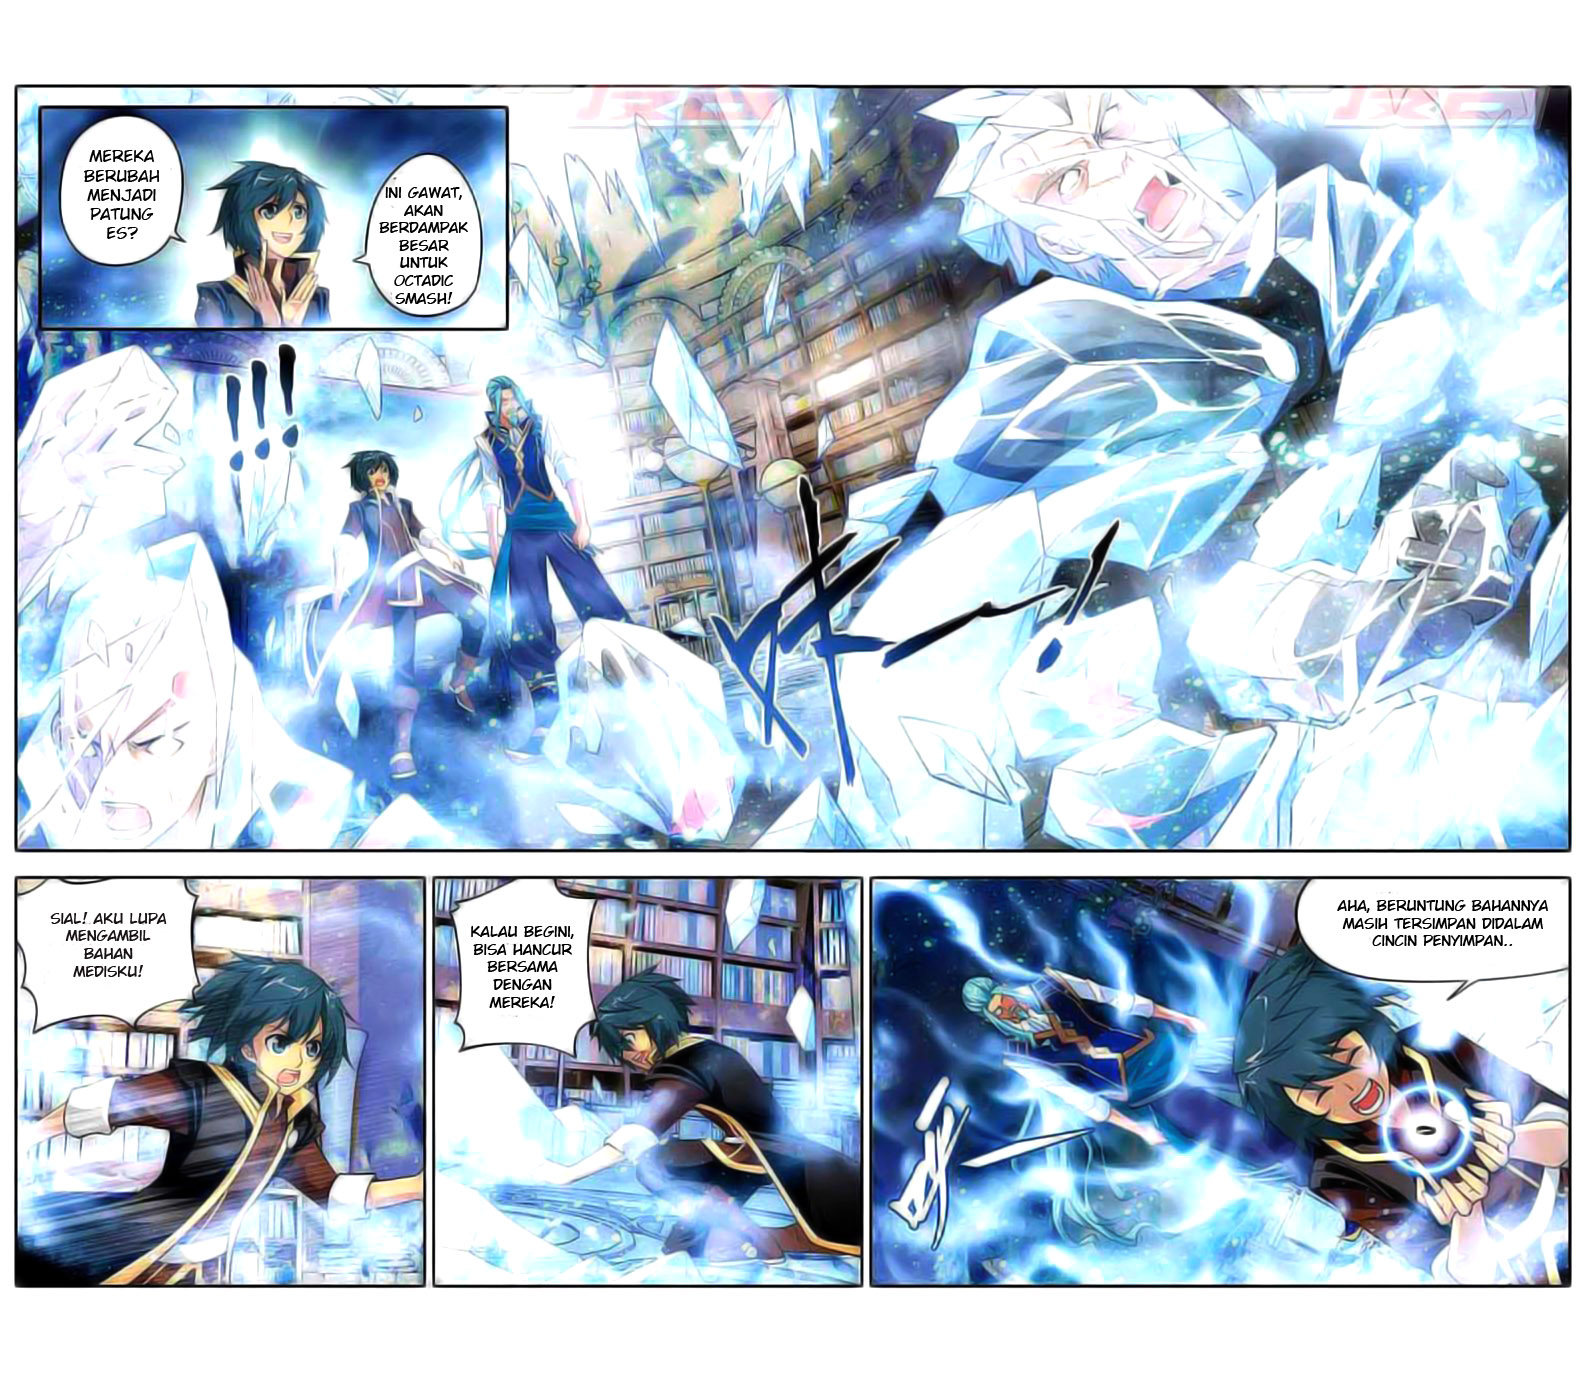 Dilarang COPAS - situs resmi www.mangacanblog.com - Komik battle through heaven 038 - chapter 38 39 Indonesia battle through heaven 038 - chapter 38 Terbaru 23|Baca Manga Komik Indonesia|Mangacan